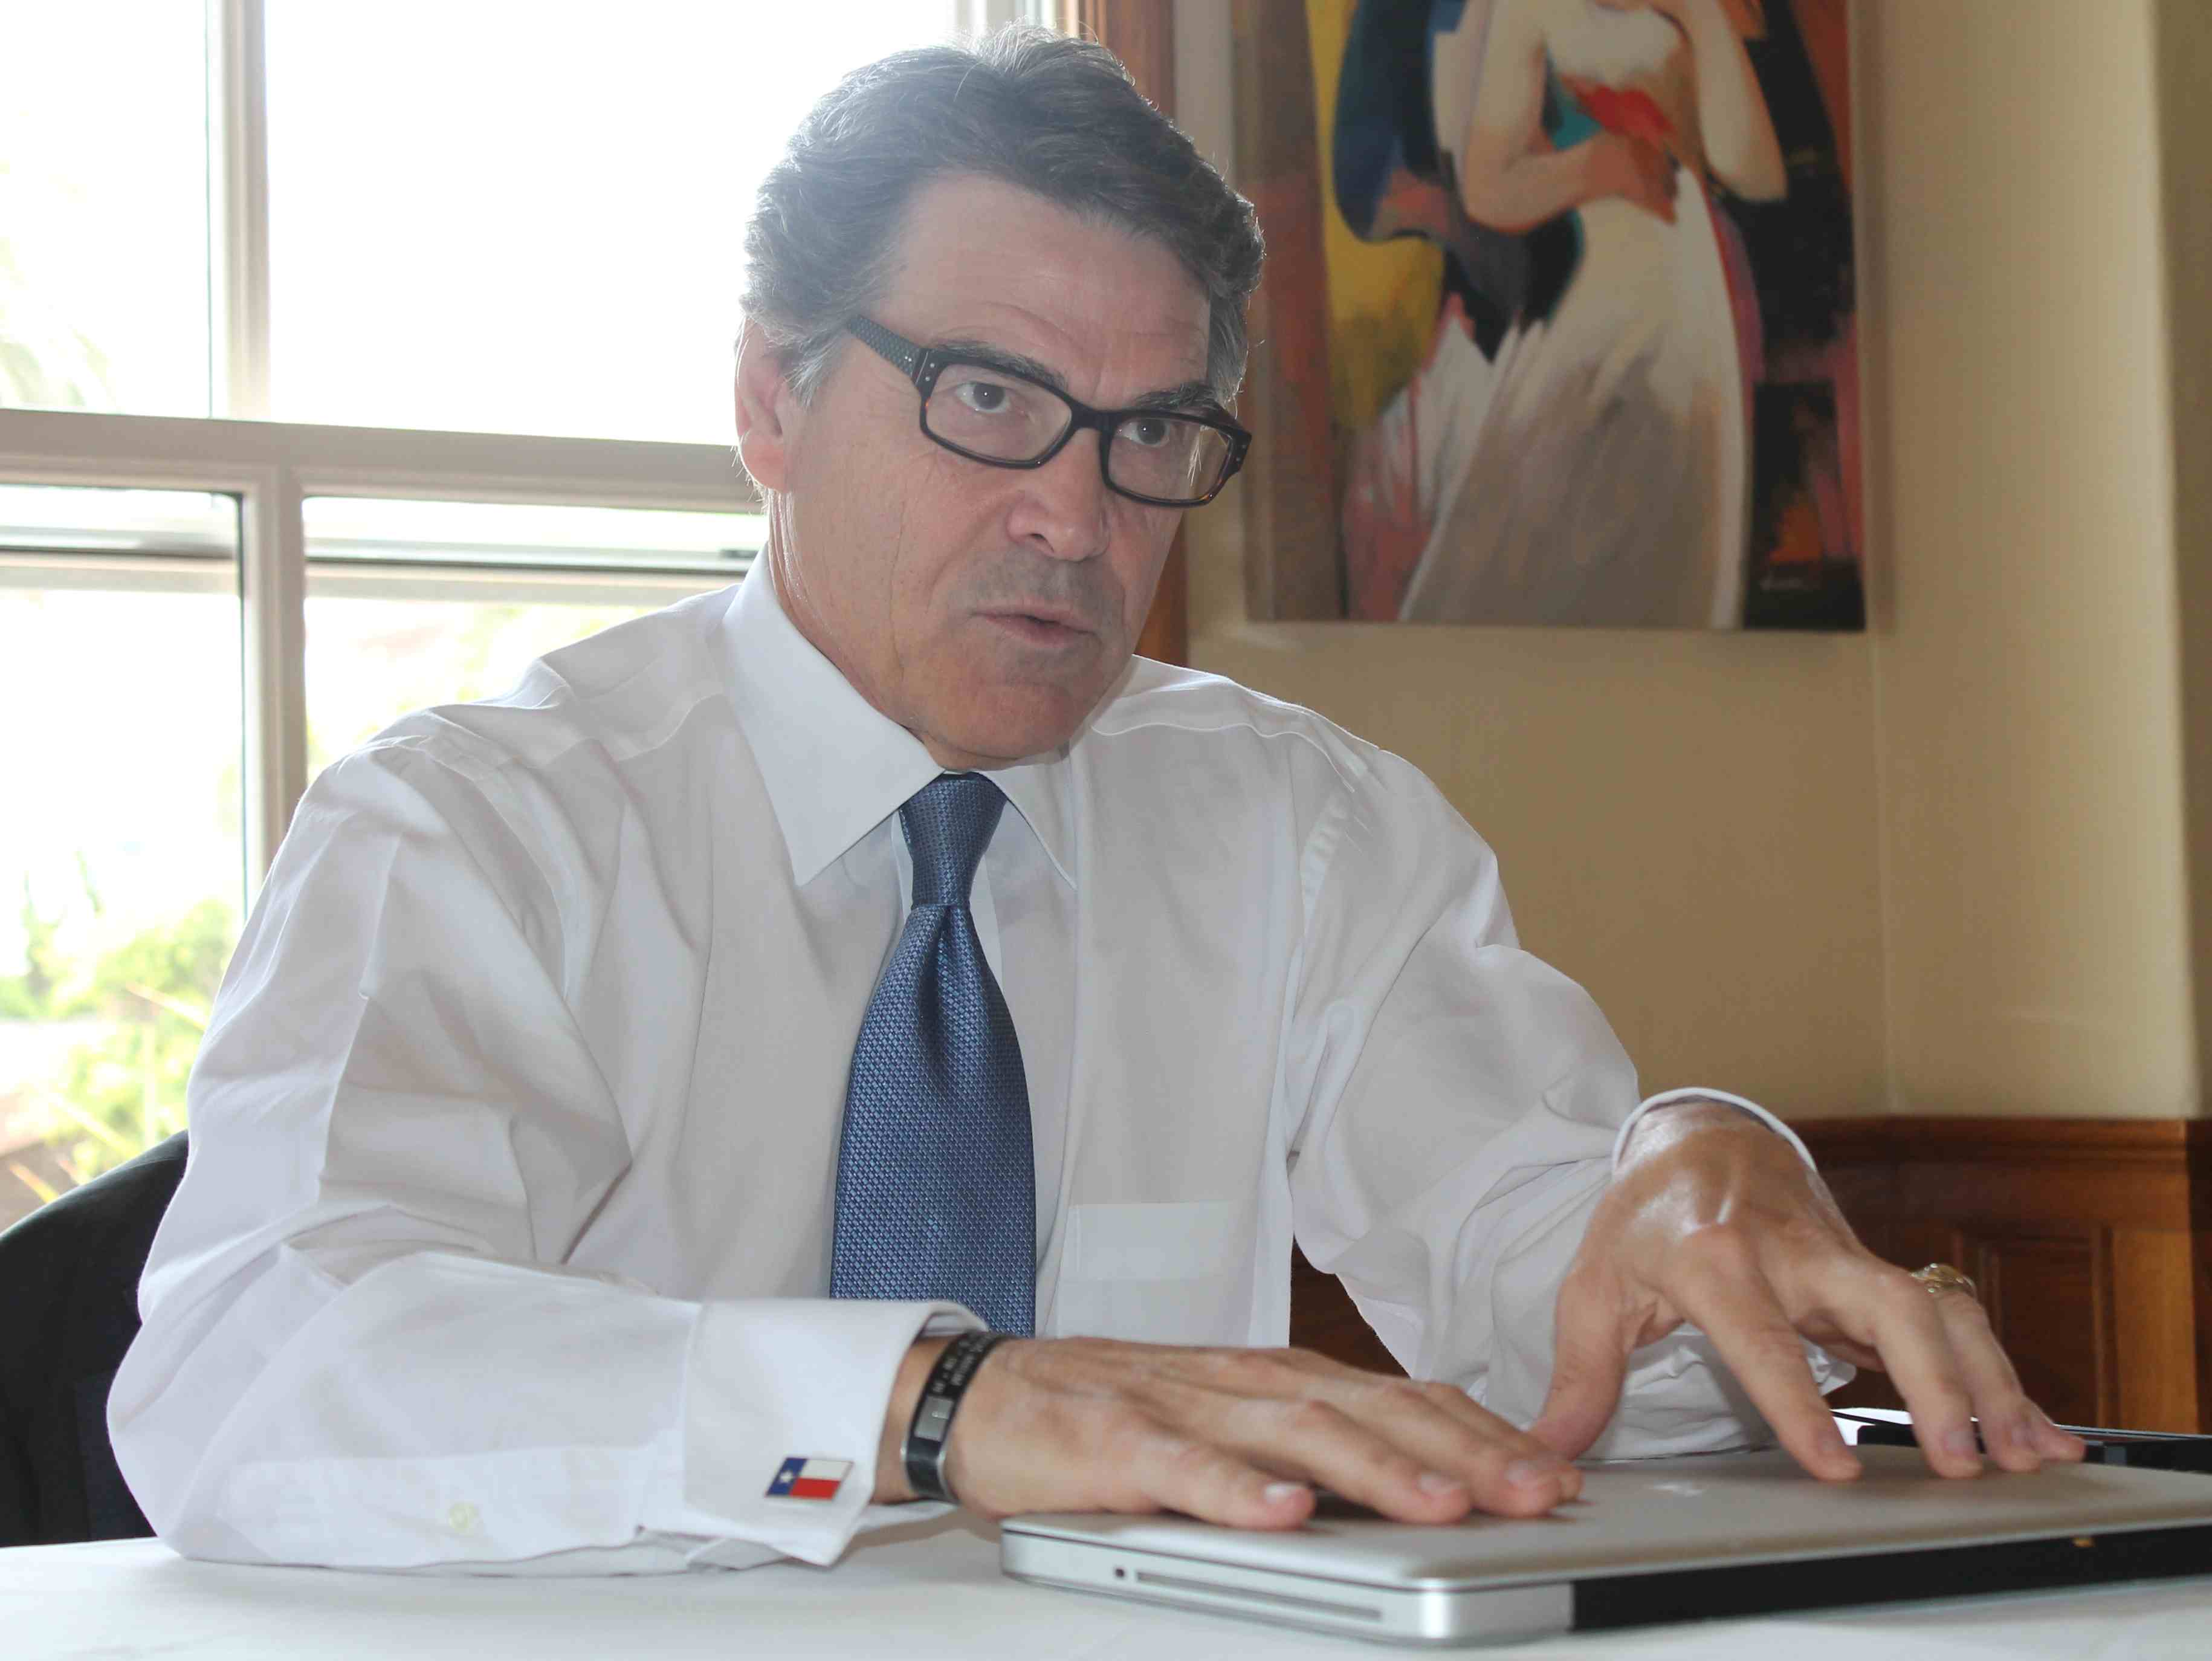 For Rick Perry, California Visits Offer Practice for 2016